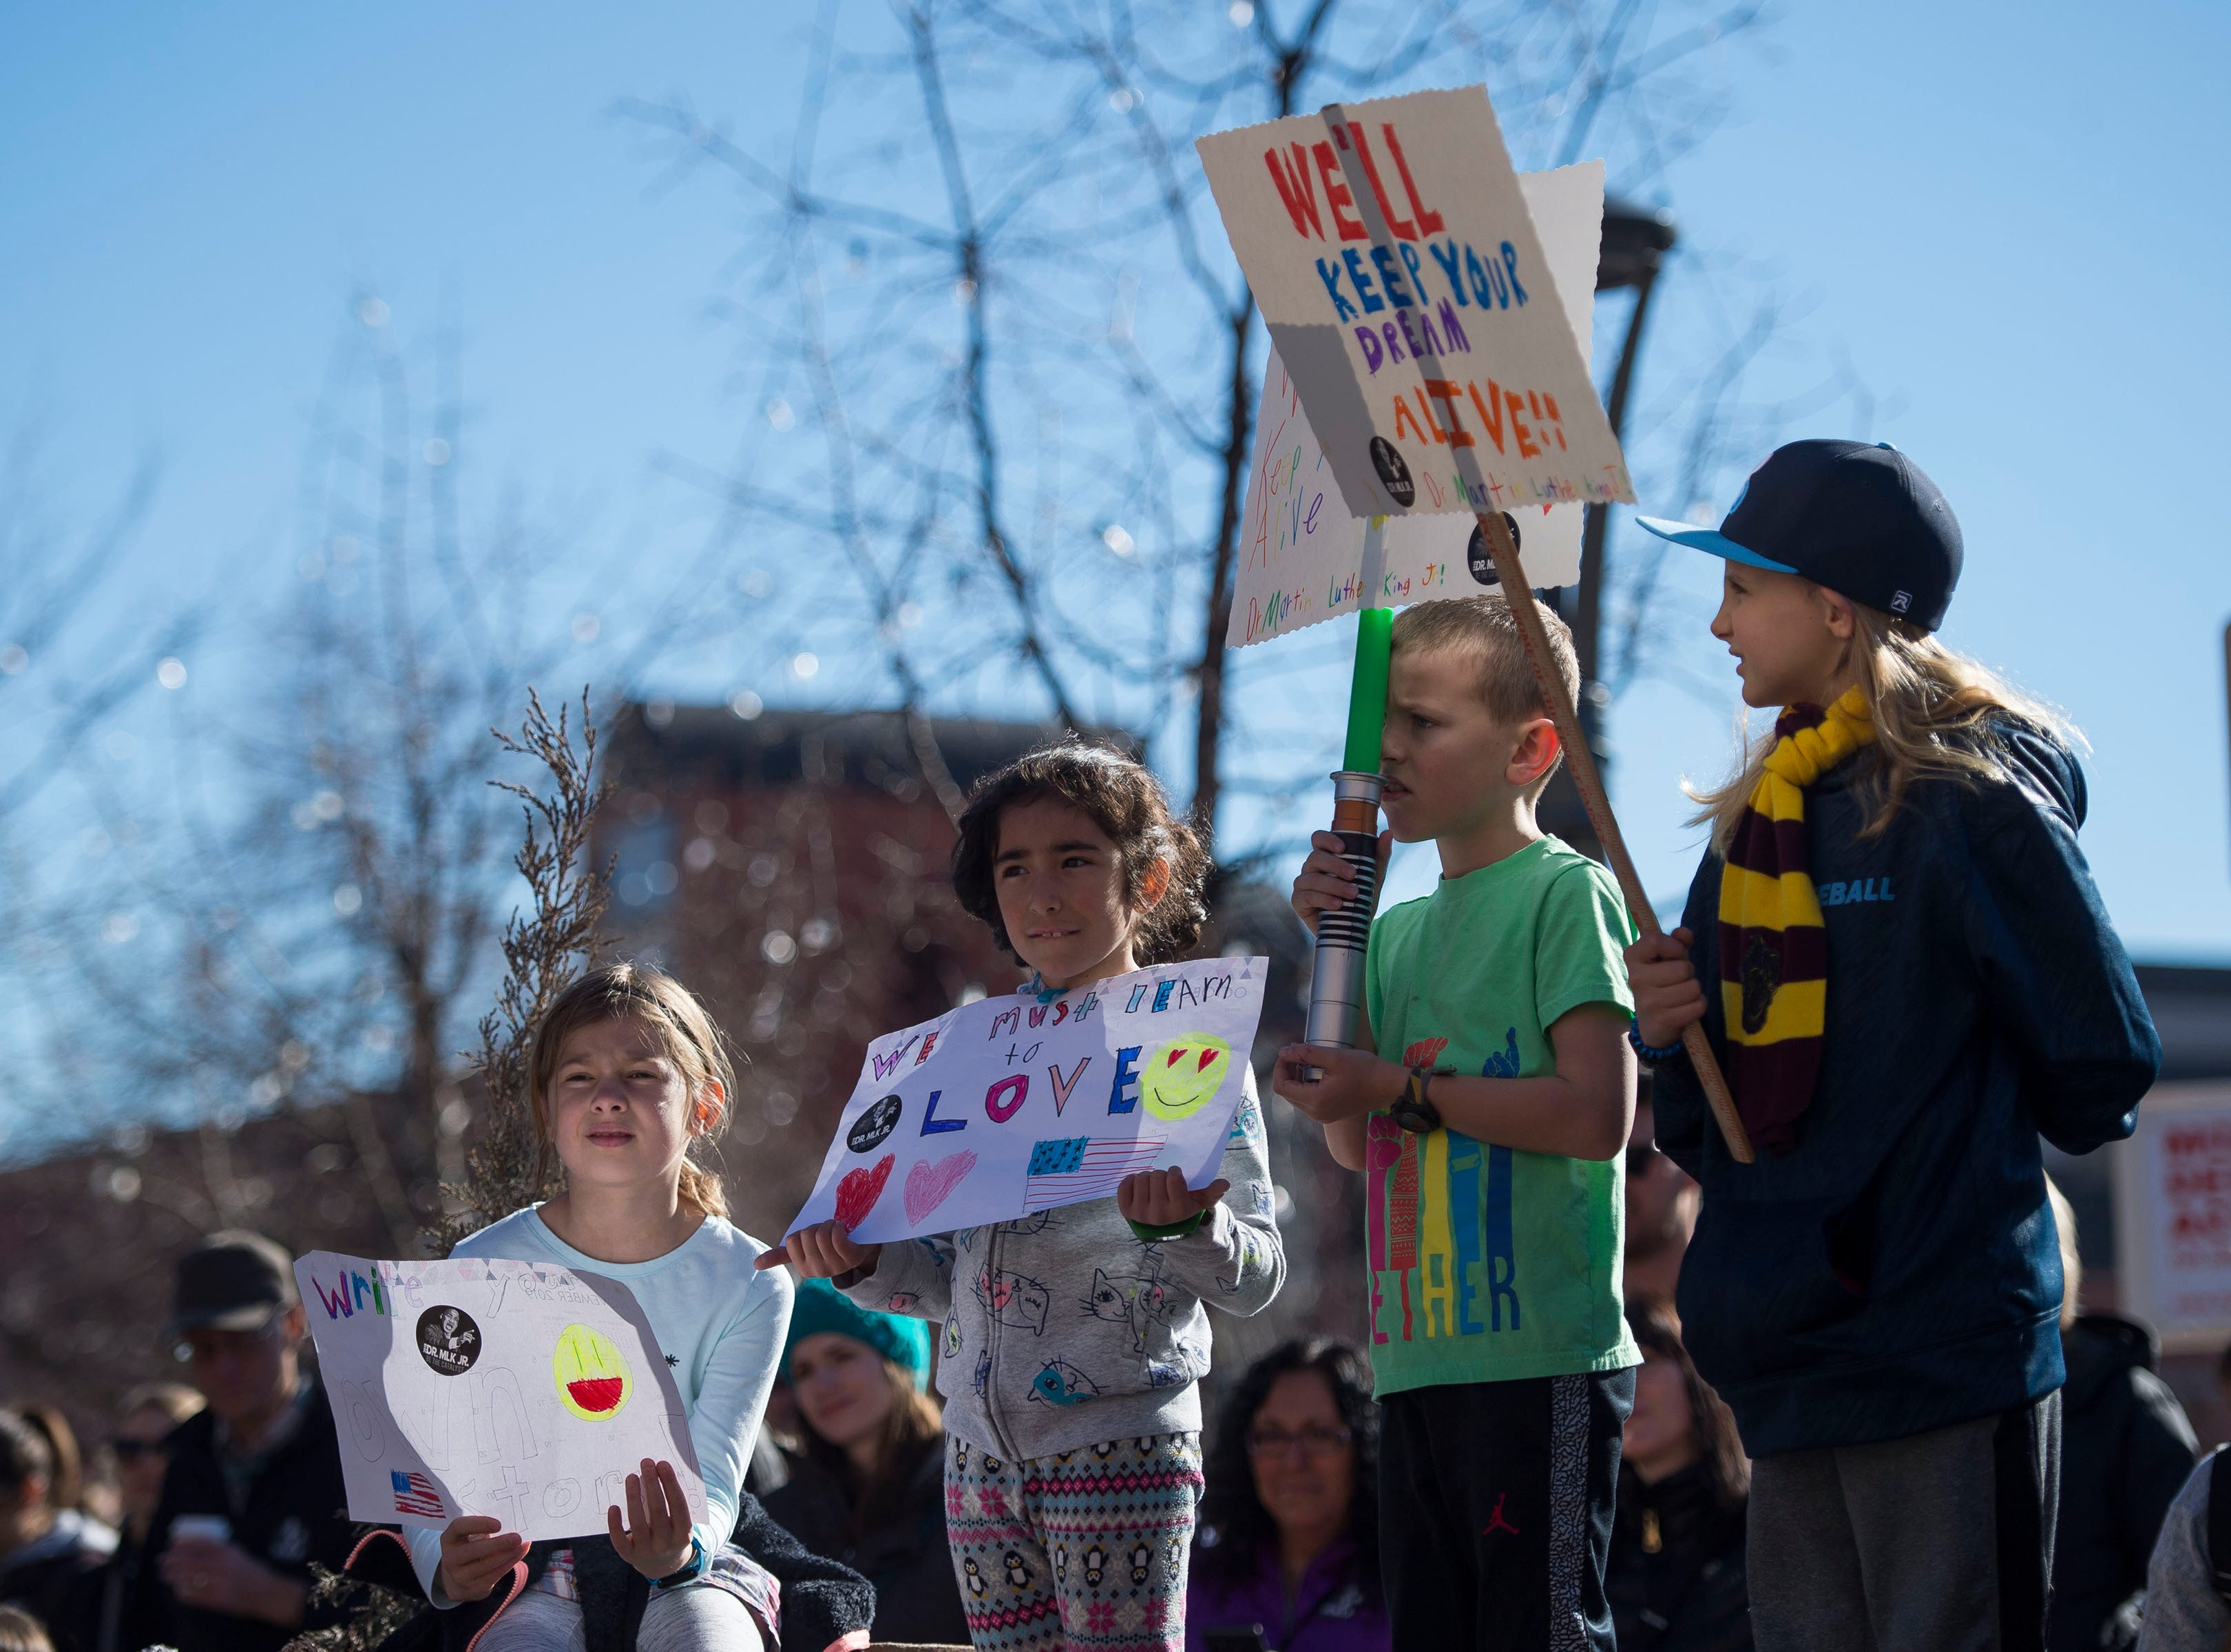 Young march participants from Shepardson Elementary School, from left, Nina Demmler, 9, Riley Ward, 8, Caden Wallace, 8, and Audrey Abernathy, 8, hold up their signs in Old Town Square at the Dr. Martin Luther King, Jr. March & Celebration on Monday, Jan. 21, 2019, in Fort Collins, Colo.